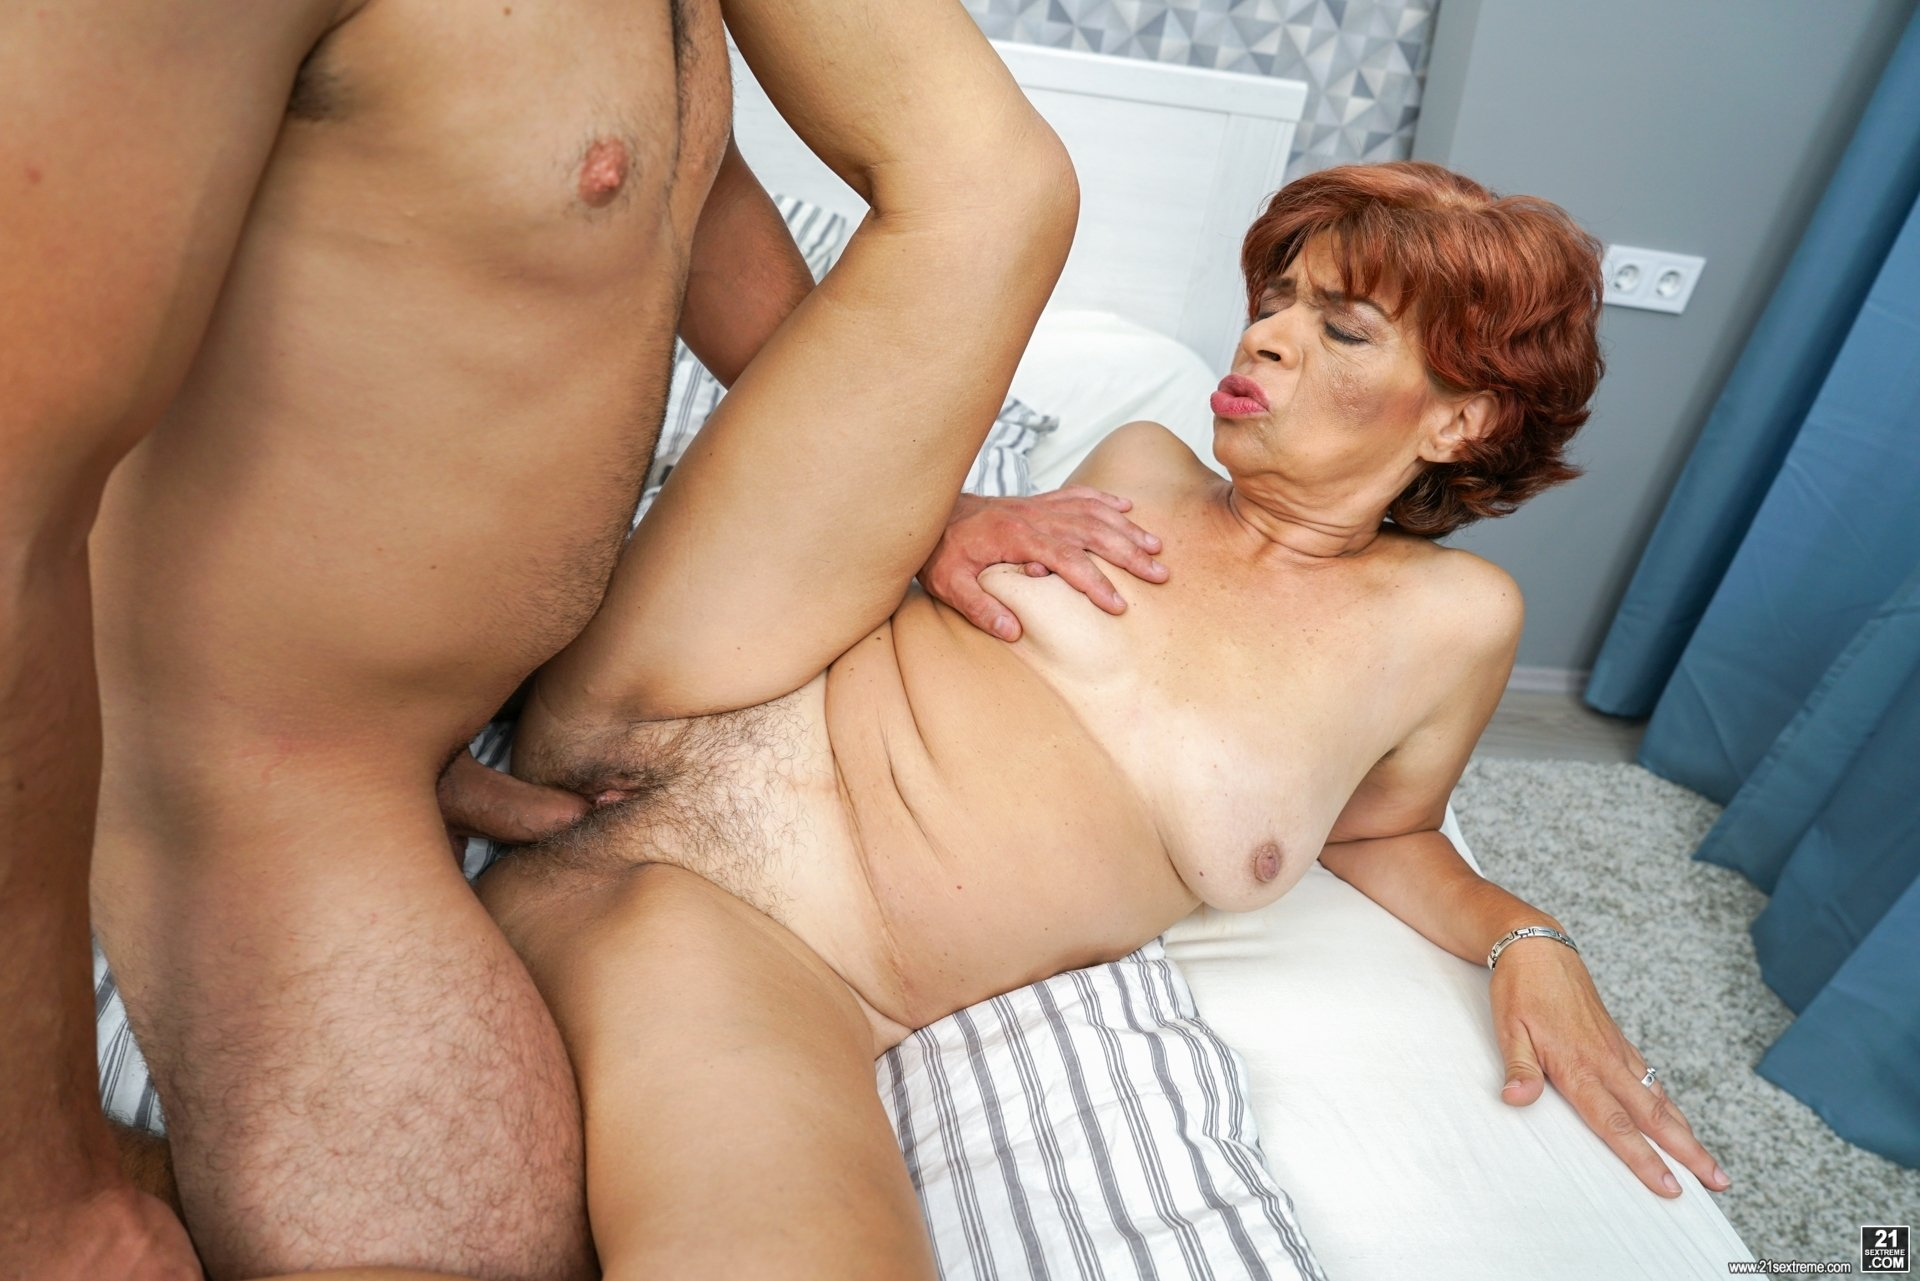 Hd fat woman xxx #1